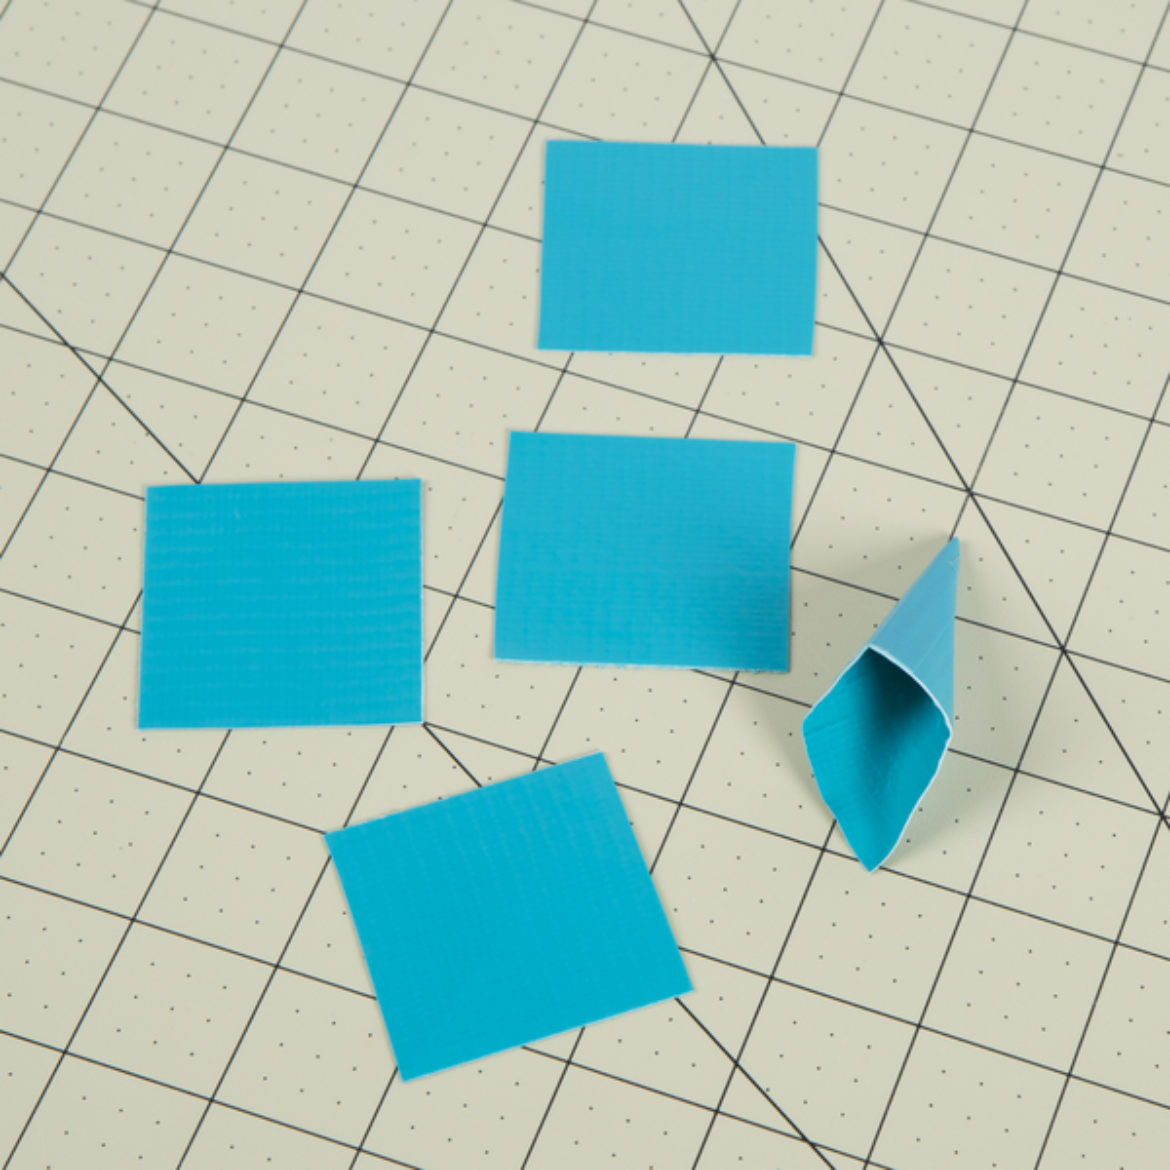 Squares from previous step folded into a cone shap and held in place with a small piece of tape